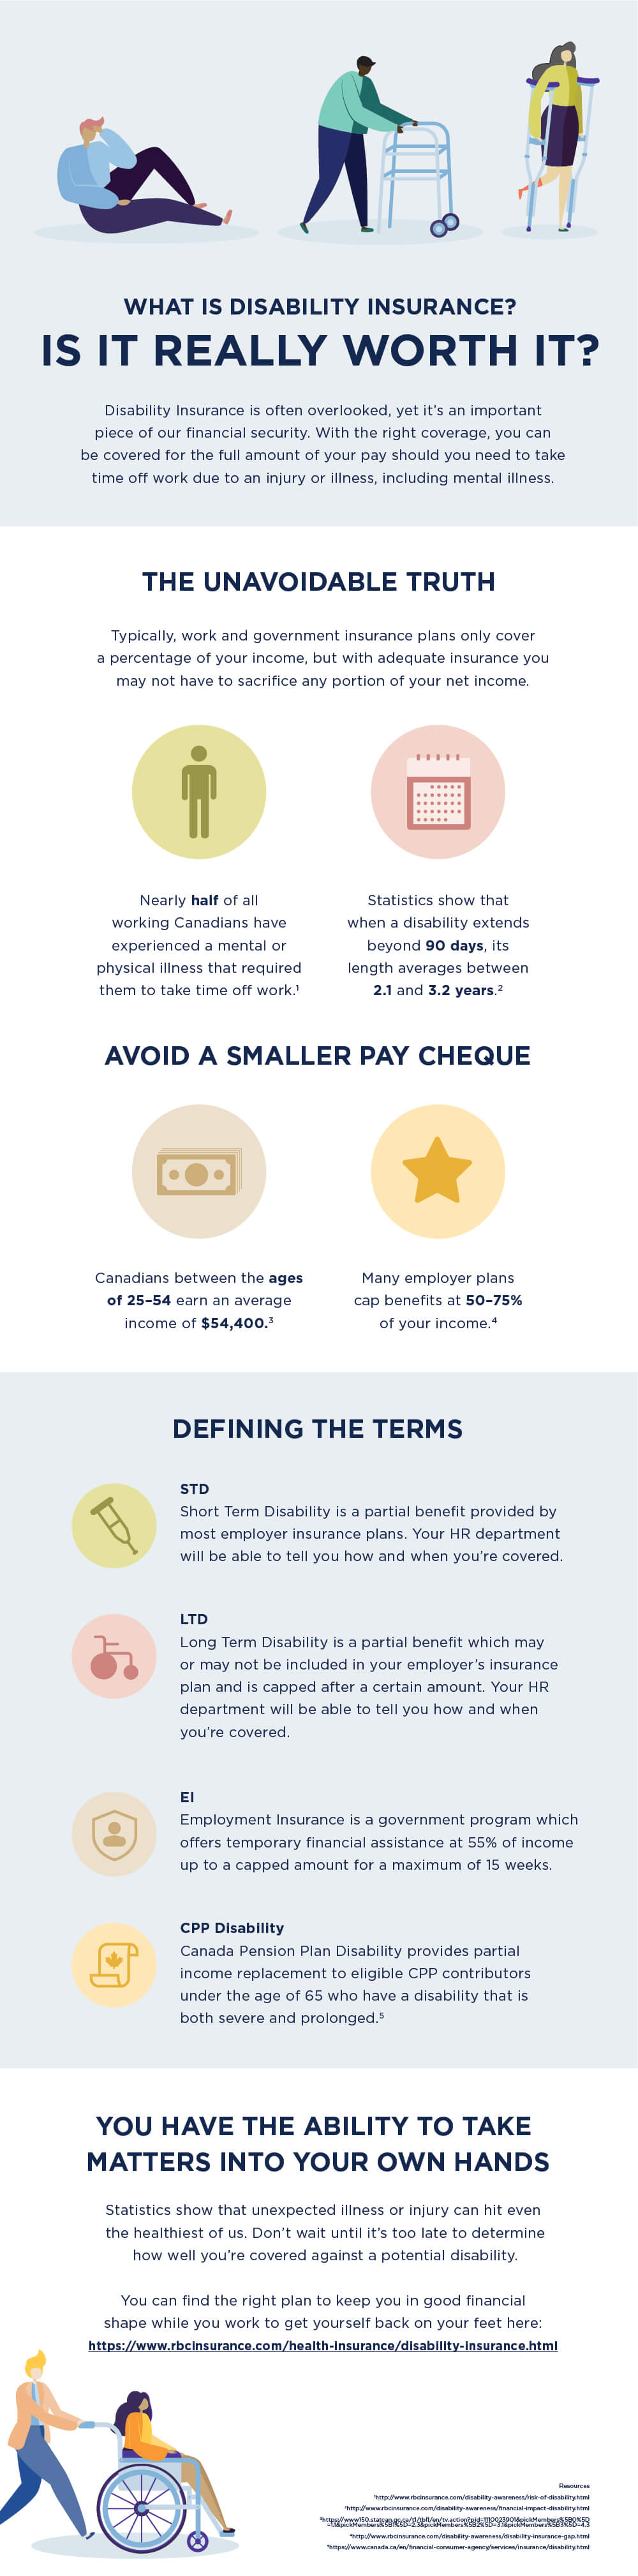 Infographic: What is disability insurance?